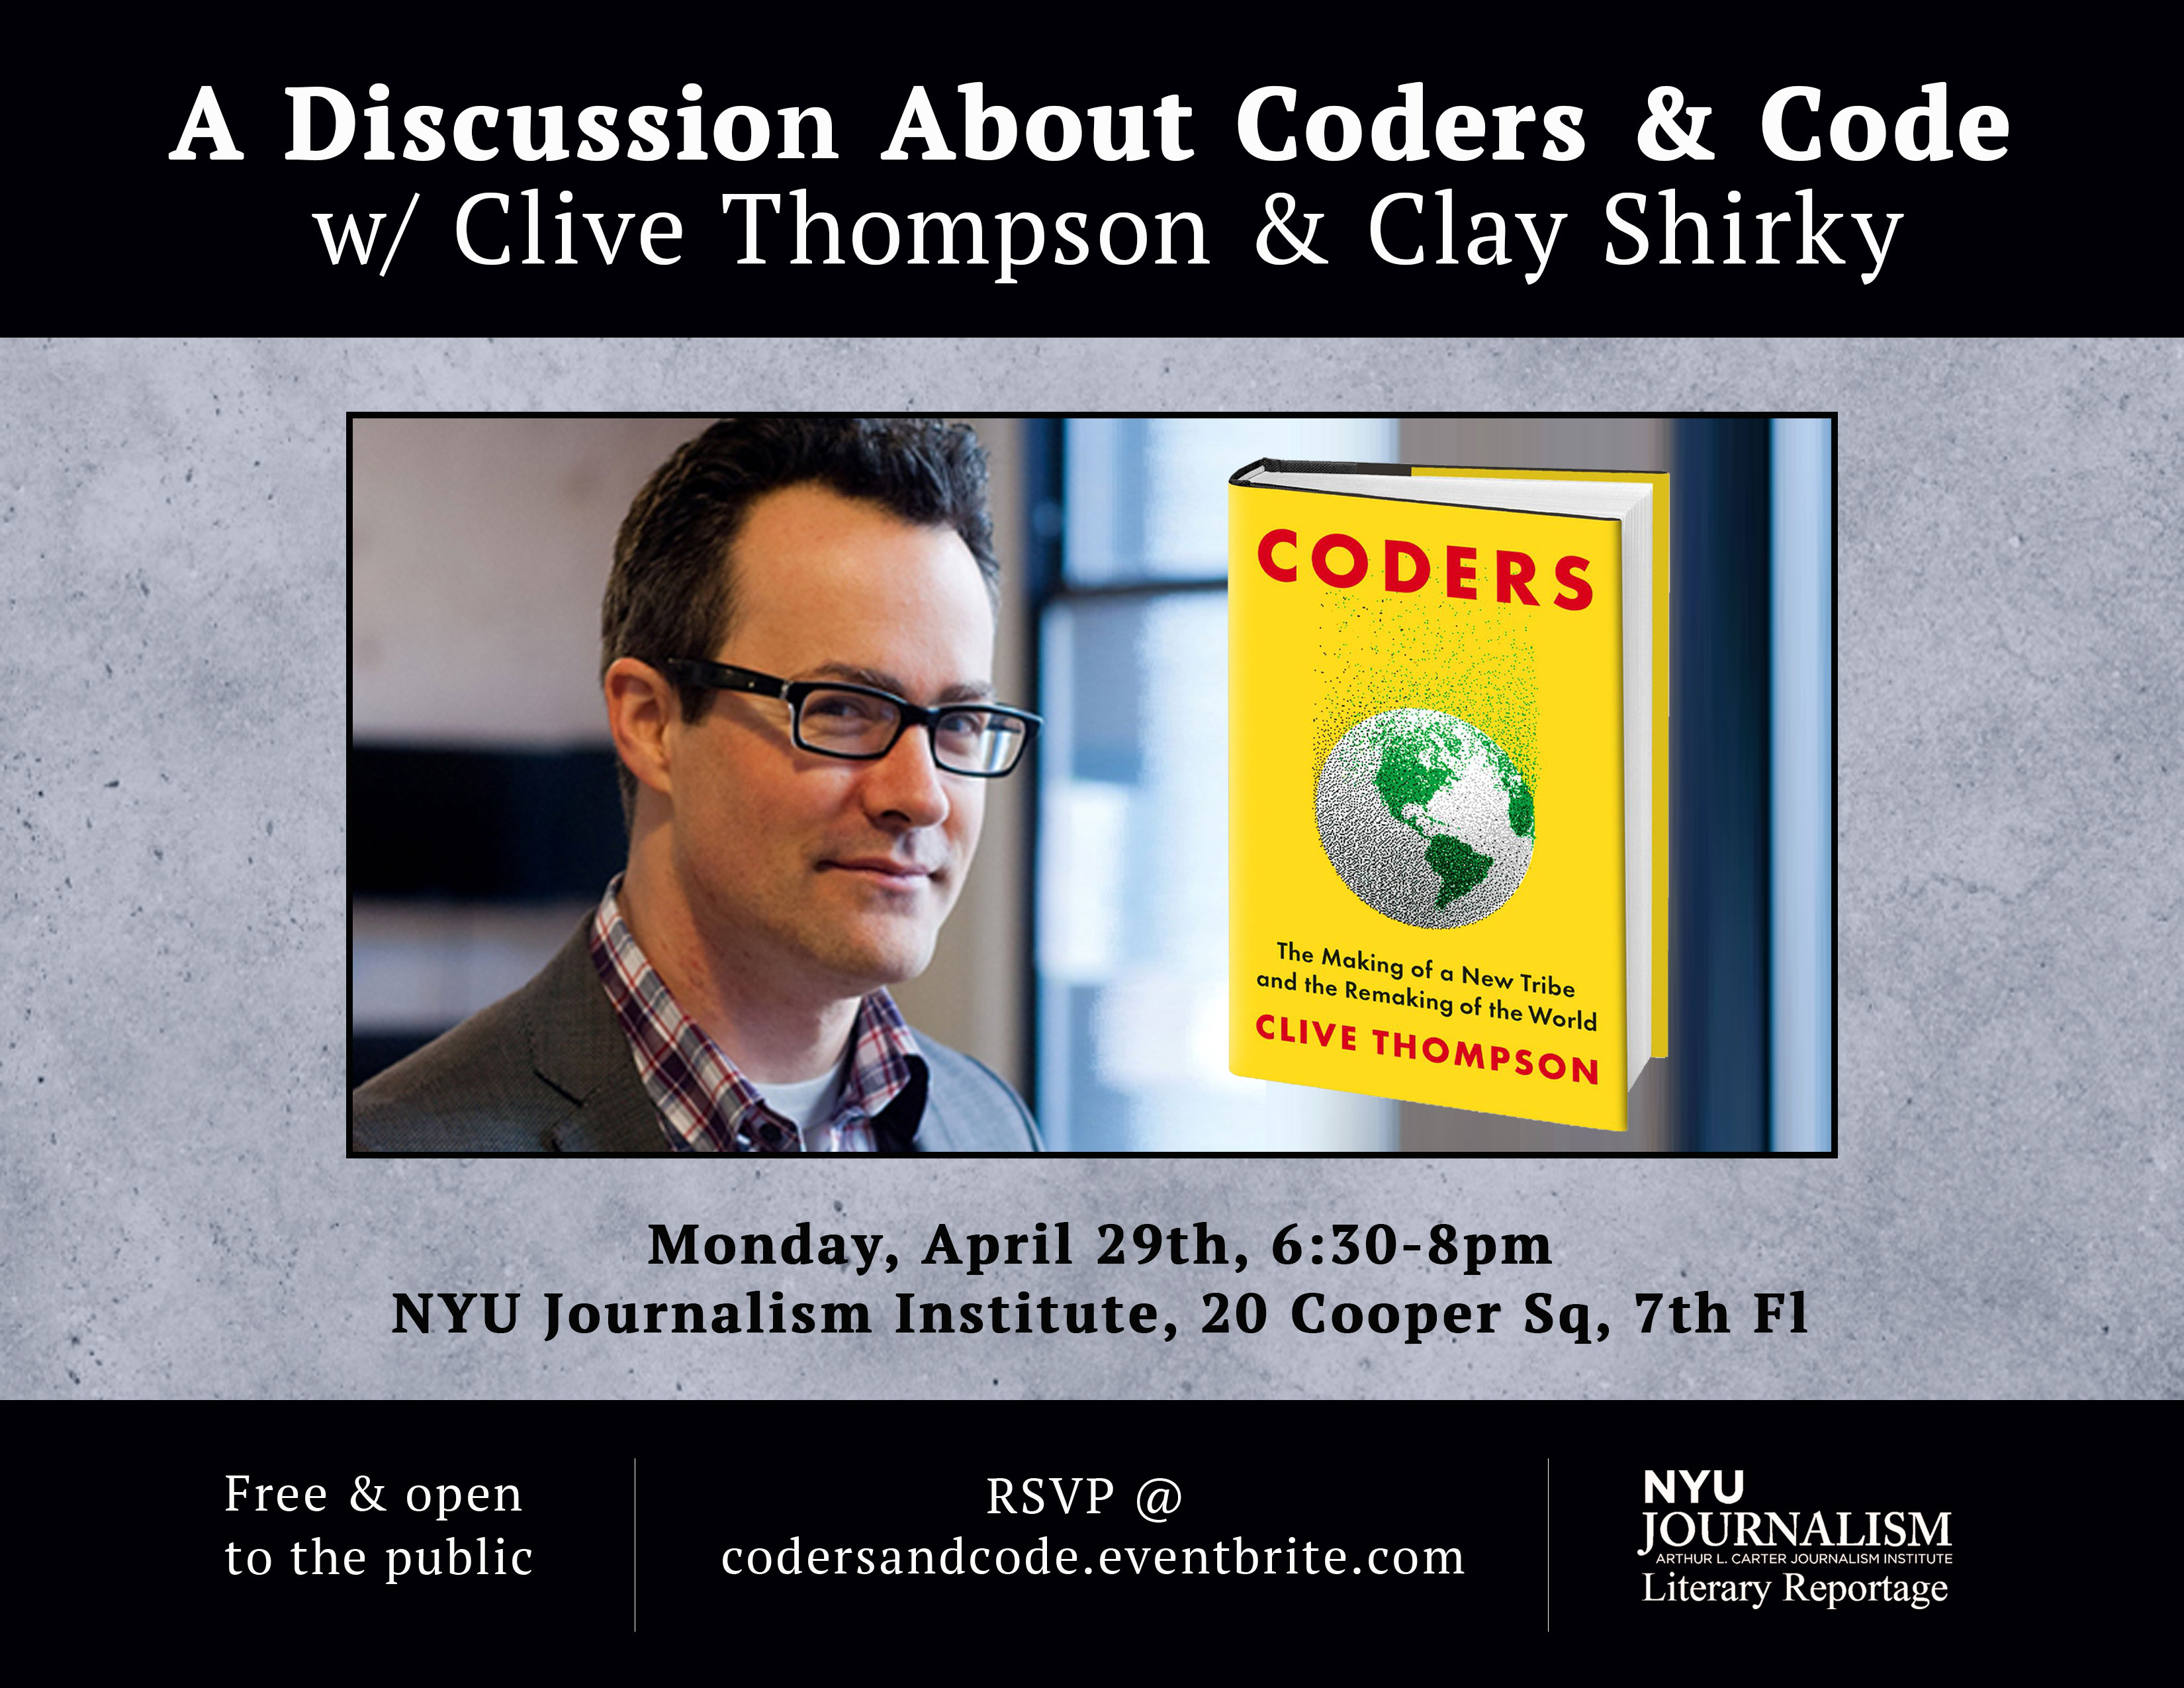 A Discussion About Coders & Code w/ Clive Thompson & Clay Shirky